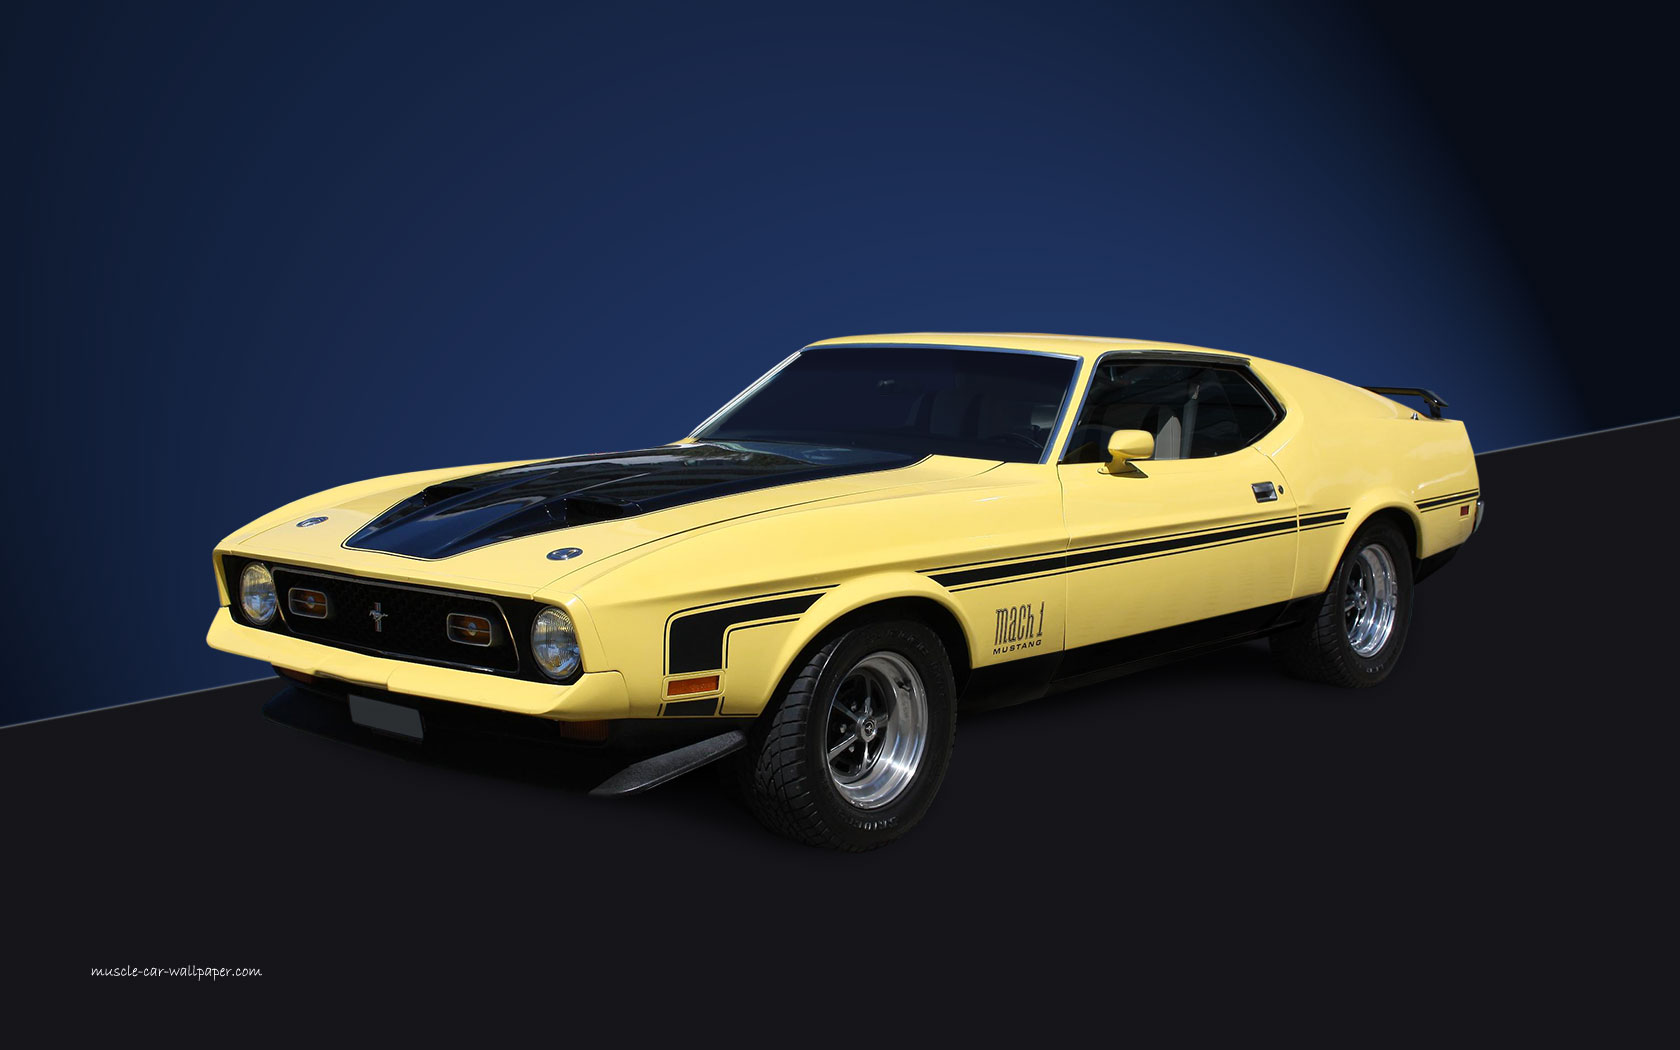 71 Mustang Mach 1 Wallpaper And Background Image 1680x1050